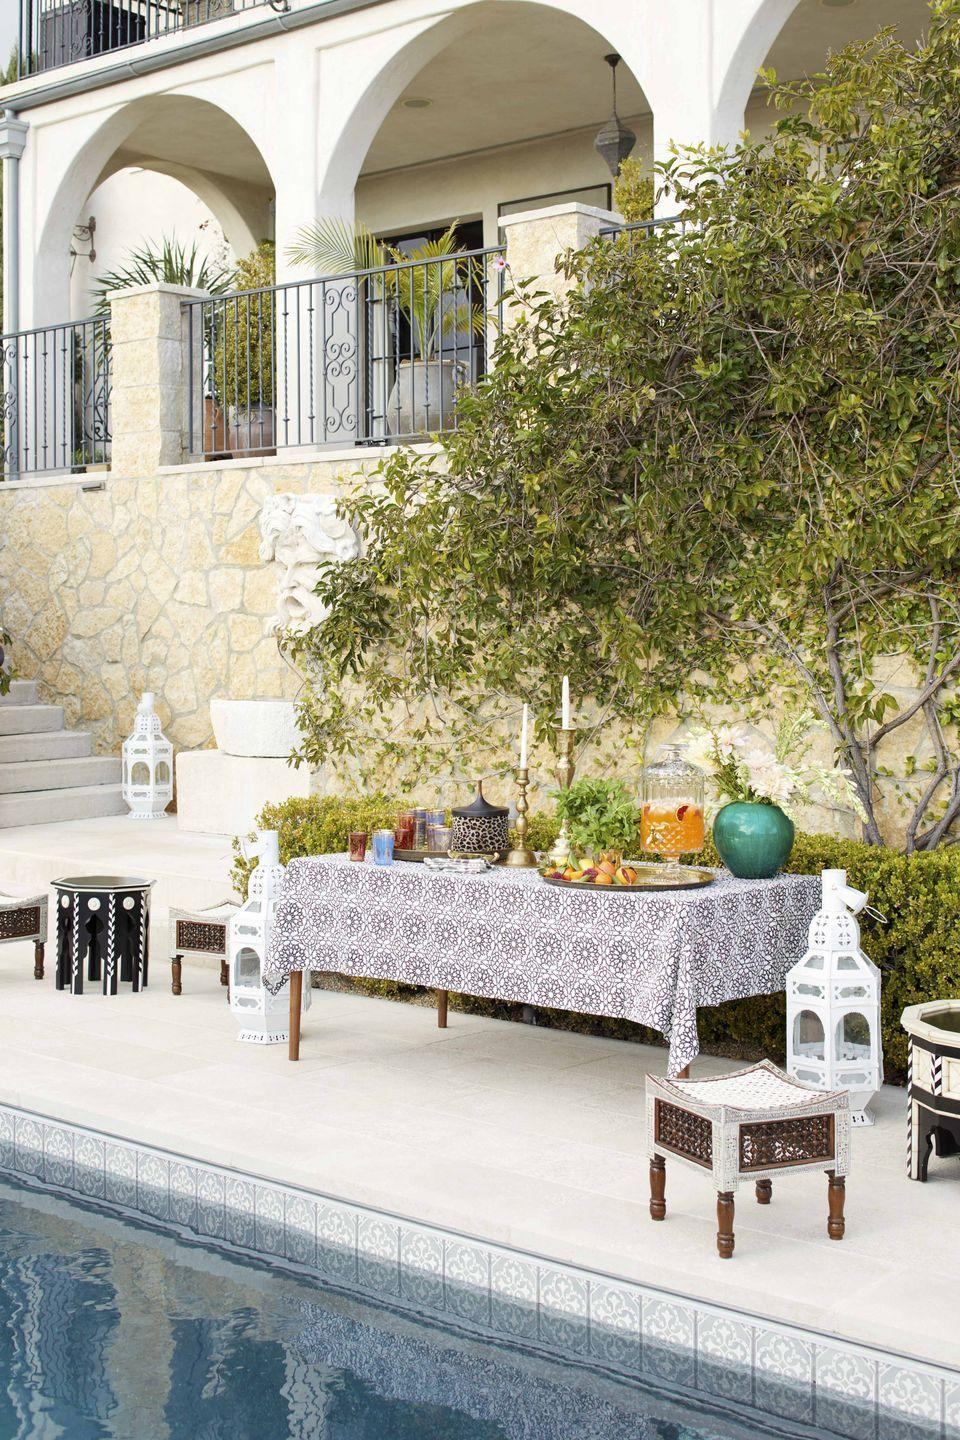 """<p>When designer Martyn Lawrence Bullard teamed up with friend and client Ellen Pompeo to host a <a href=""""https://www.veranda.com/luxury-lifestyle/a27105011/ellen-pompeo-martyn-lawrence-bullard-hollywood-entertaining/"""" rel=""""nofollow noopener"""" target=""""_blank"""" data-ylk=""""slk:Moroccan soiree"""" class=""""link rapid-noclick-resp"""">Moroccan soiree</a>, he twirled up a table for serving poolside cocktails with a tablecloth made from his fabric line. The tables are from <a href=""""https://martynlawrencebullard.com/products/mlb-furniture-atelier/"""" rel=""""nofollow noopener"""" target=""""_blank"""" data-ylk=""""slk:Martyn Lawrence Bullard Atelier & Furniture"""" class=""""link rapid-noclick-resp"""">Martyn Lawrence Bullard Atelier & Furniture</a>, and the Moroccan lanterns are from <a href=""""https://www.berbereworldimports.com/"""" rel=""""nofollow noopener"""" target=""""_blank"""" data-ylk=""""slk:Berbere World Imports"""" class=""""link rapid-noclick-resp"""">Berbere World Imports</a>.</p>"""